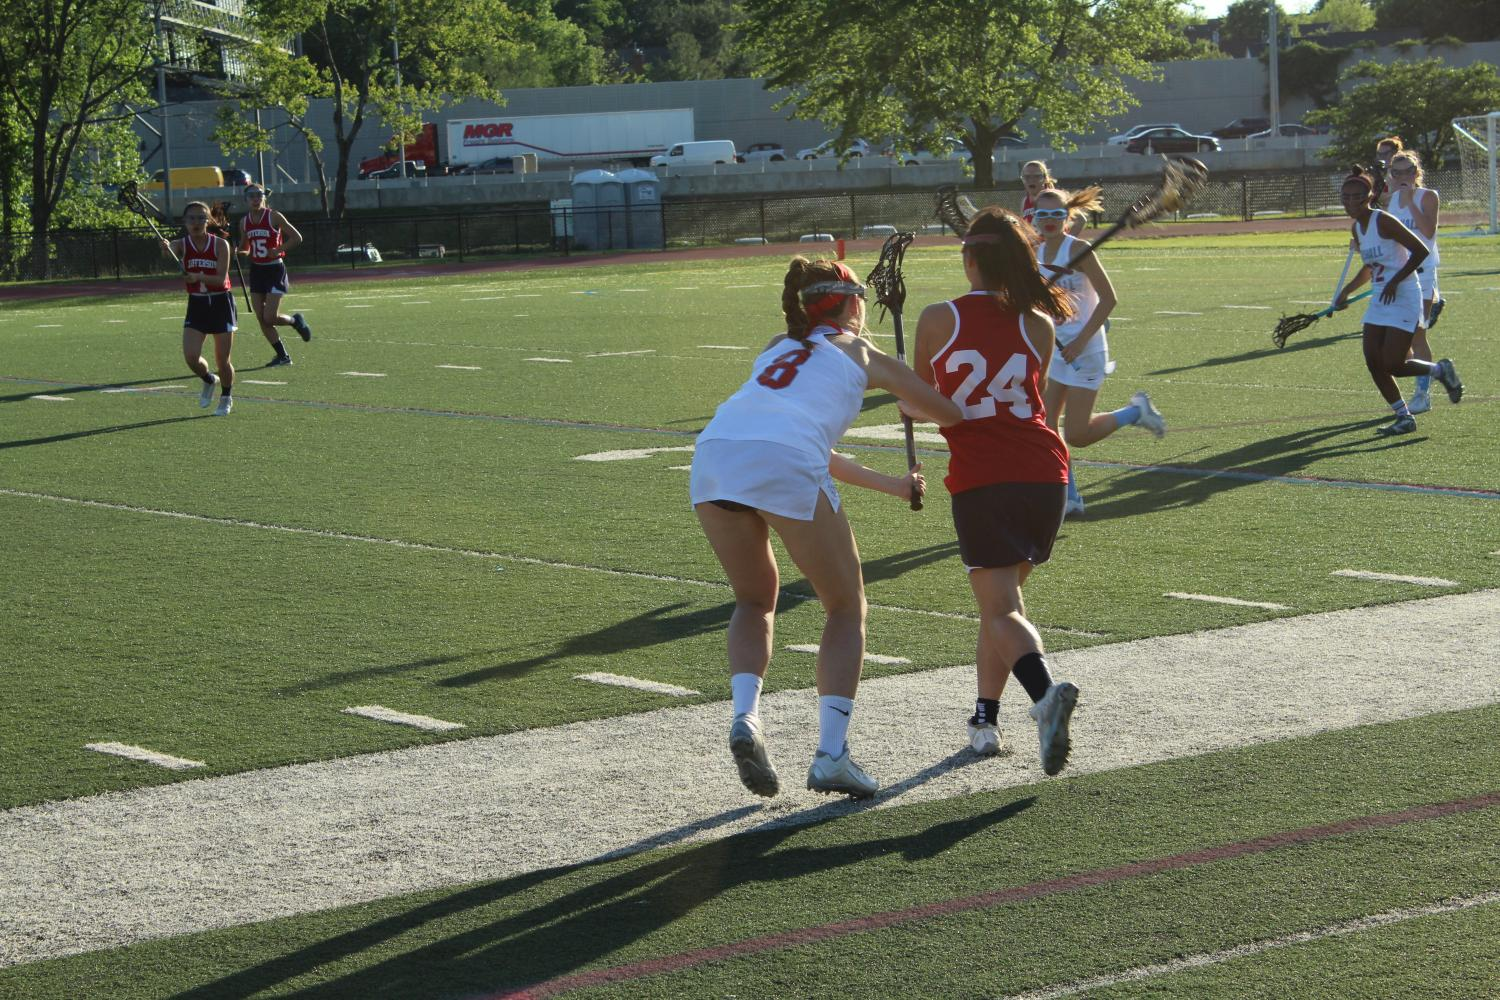 Marshall senior Rachel Piche guards Jefferson freshman Abby Kim as she runs with the ball toward the Marshall goal.